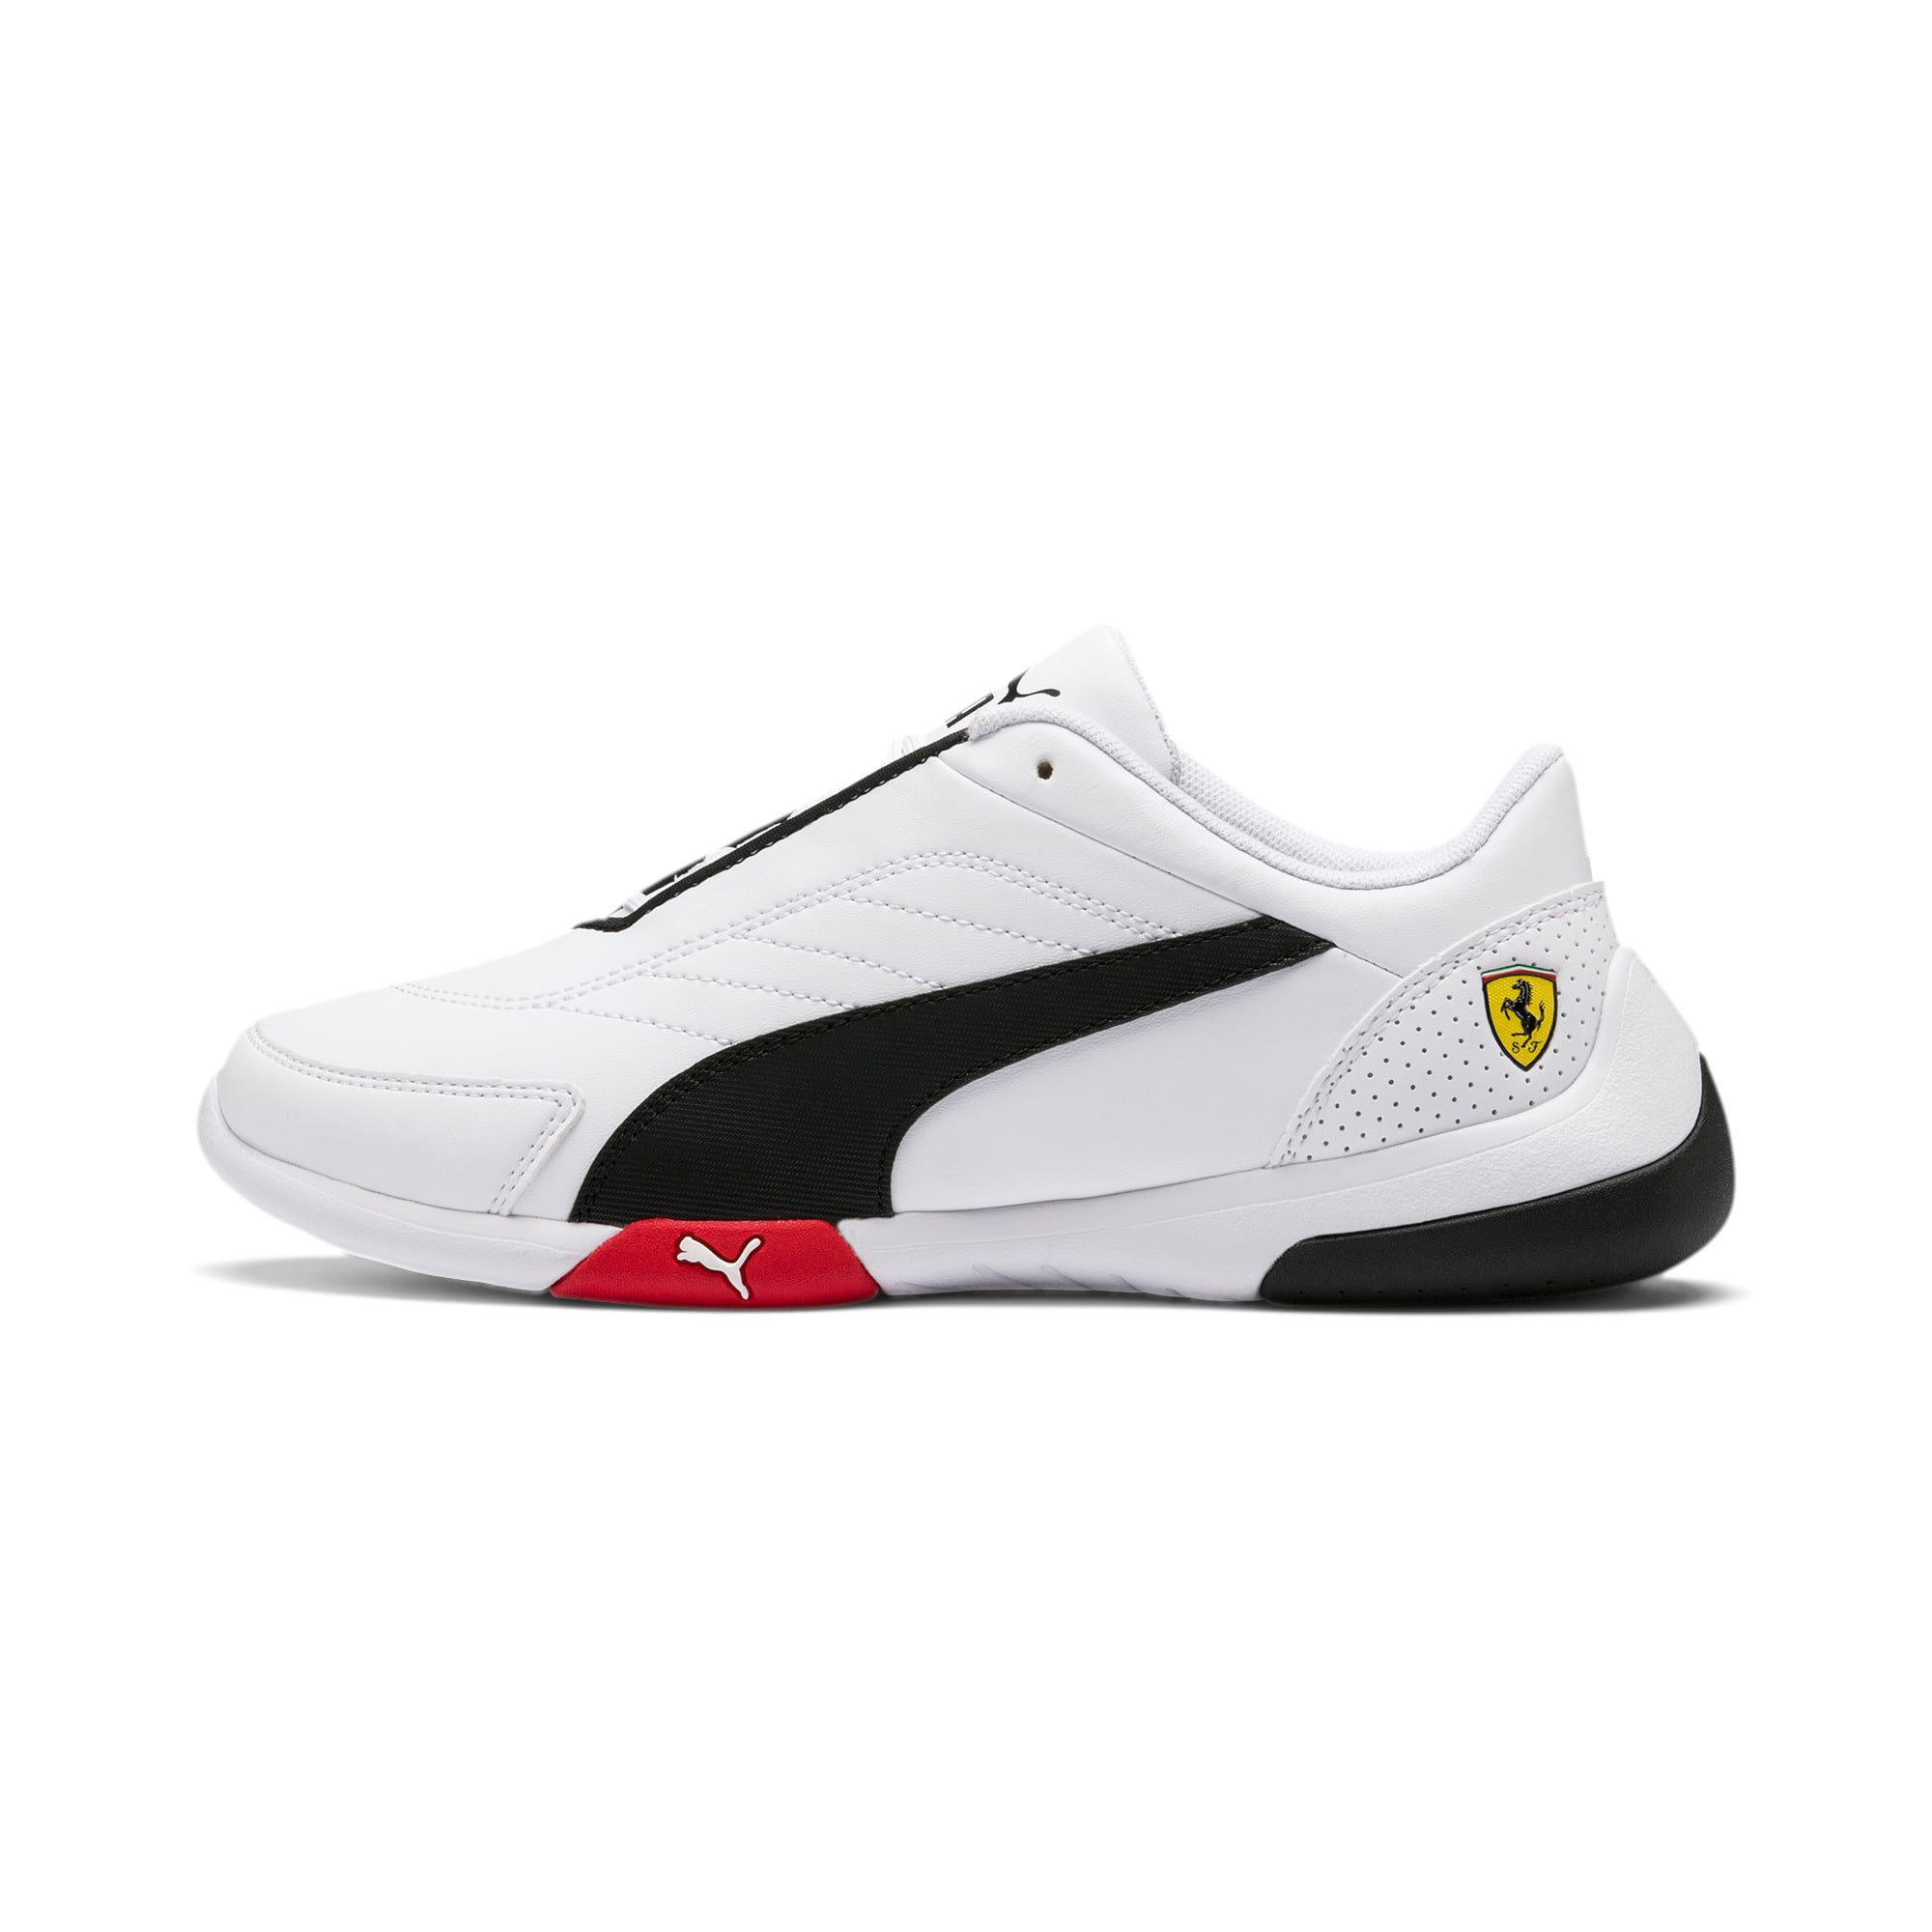 Thumbnail 1 of Basket Ferrari Kart Cat III Youth, White-Black-Rosso Corsa, medium